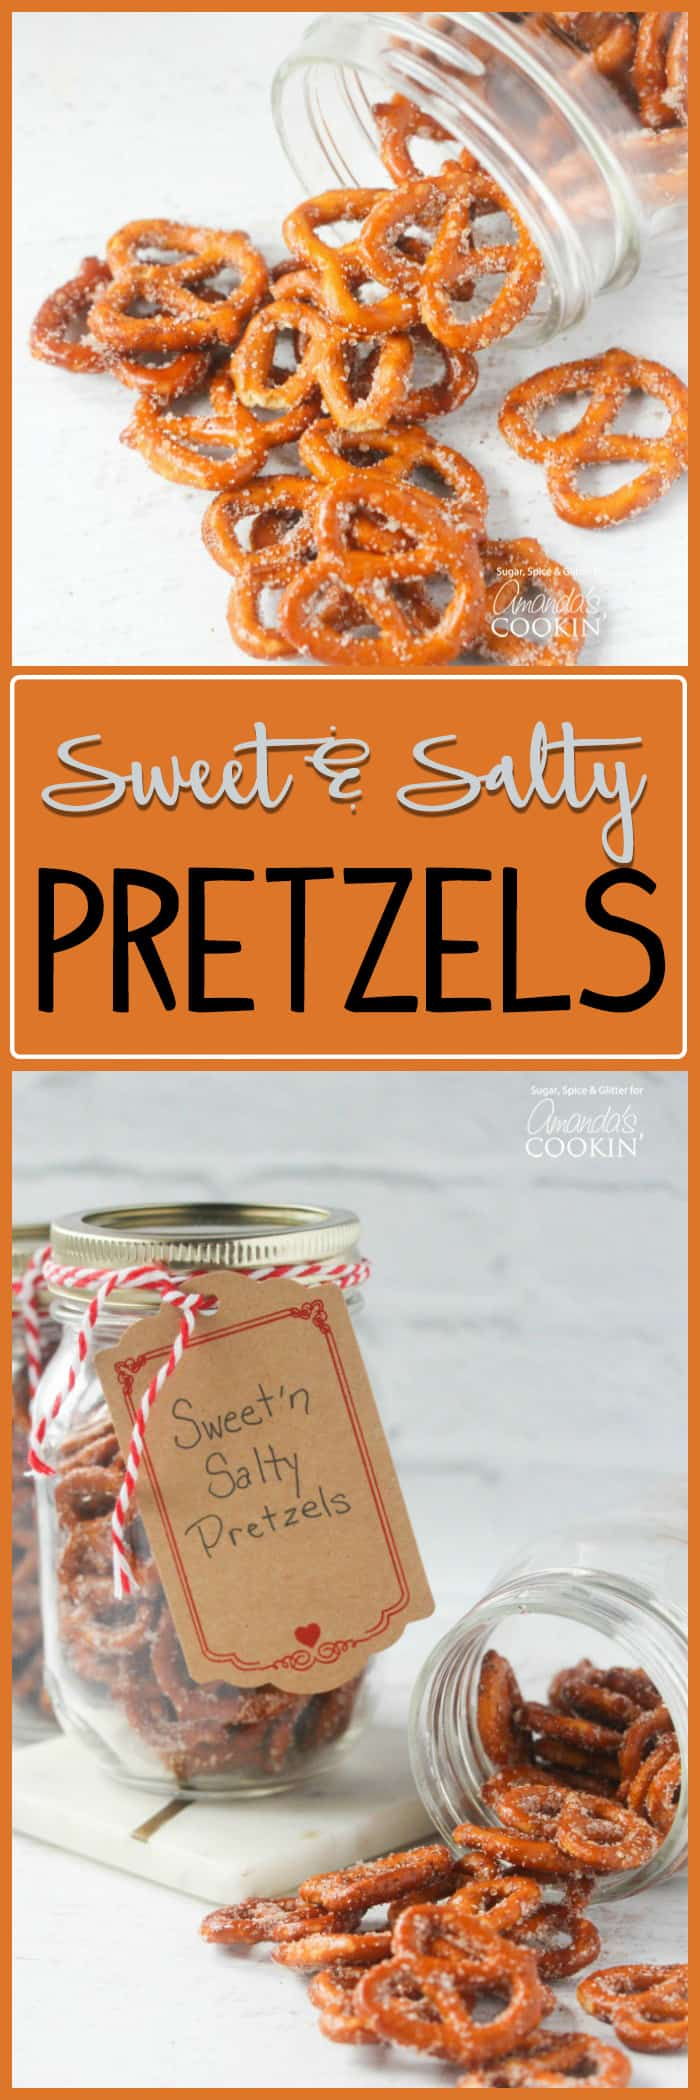 Photos of sweet and salty pretzels in jars.